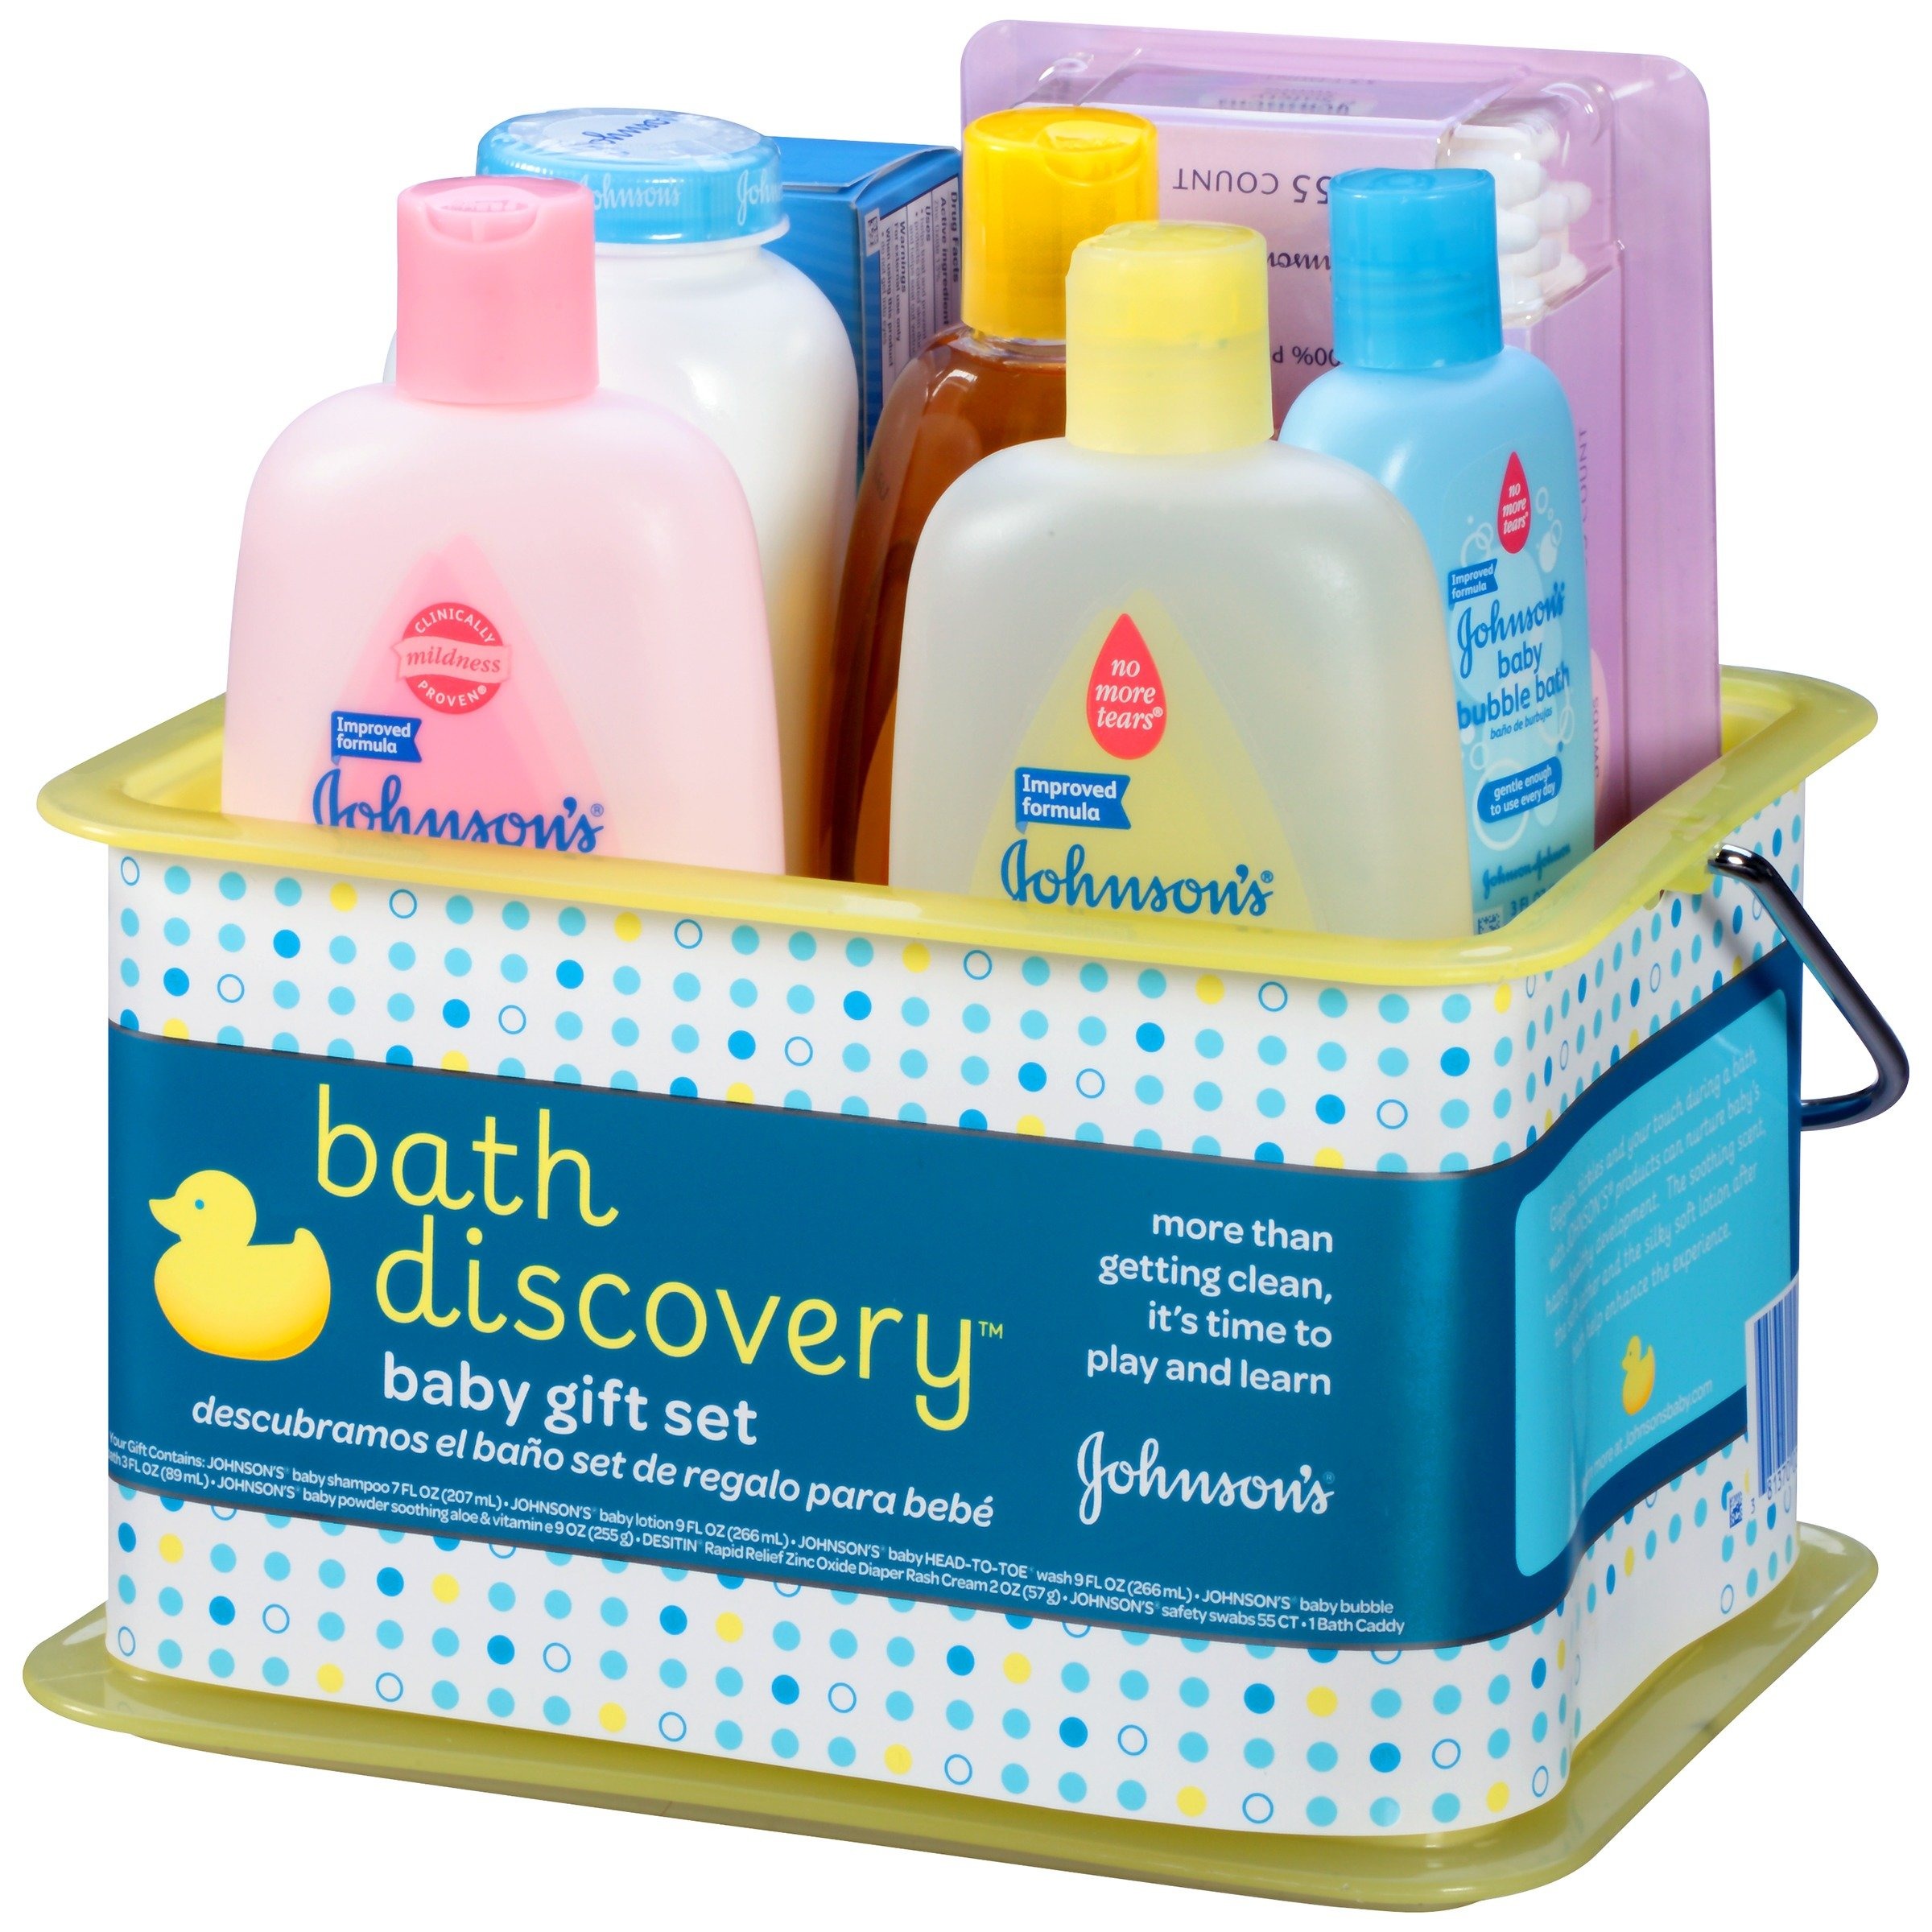 Galleon Johnson S Bath Discovery Baby Gift Set